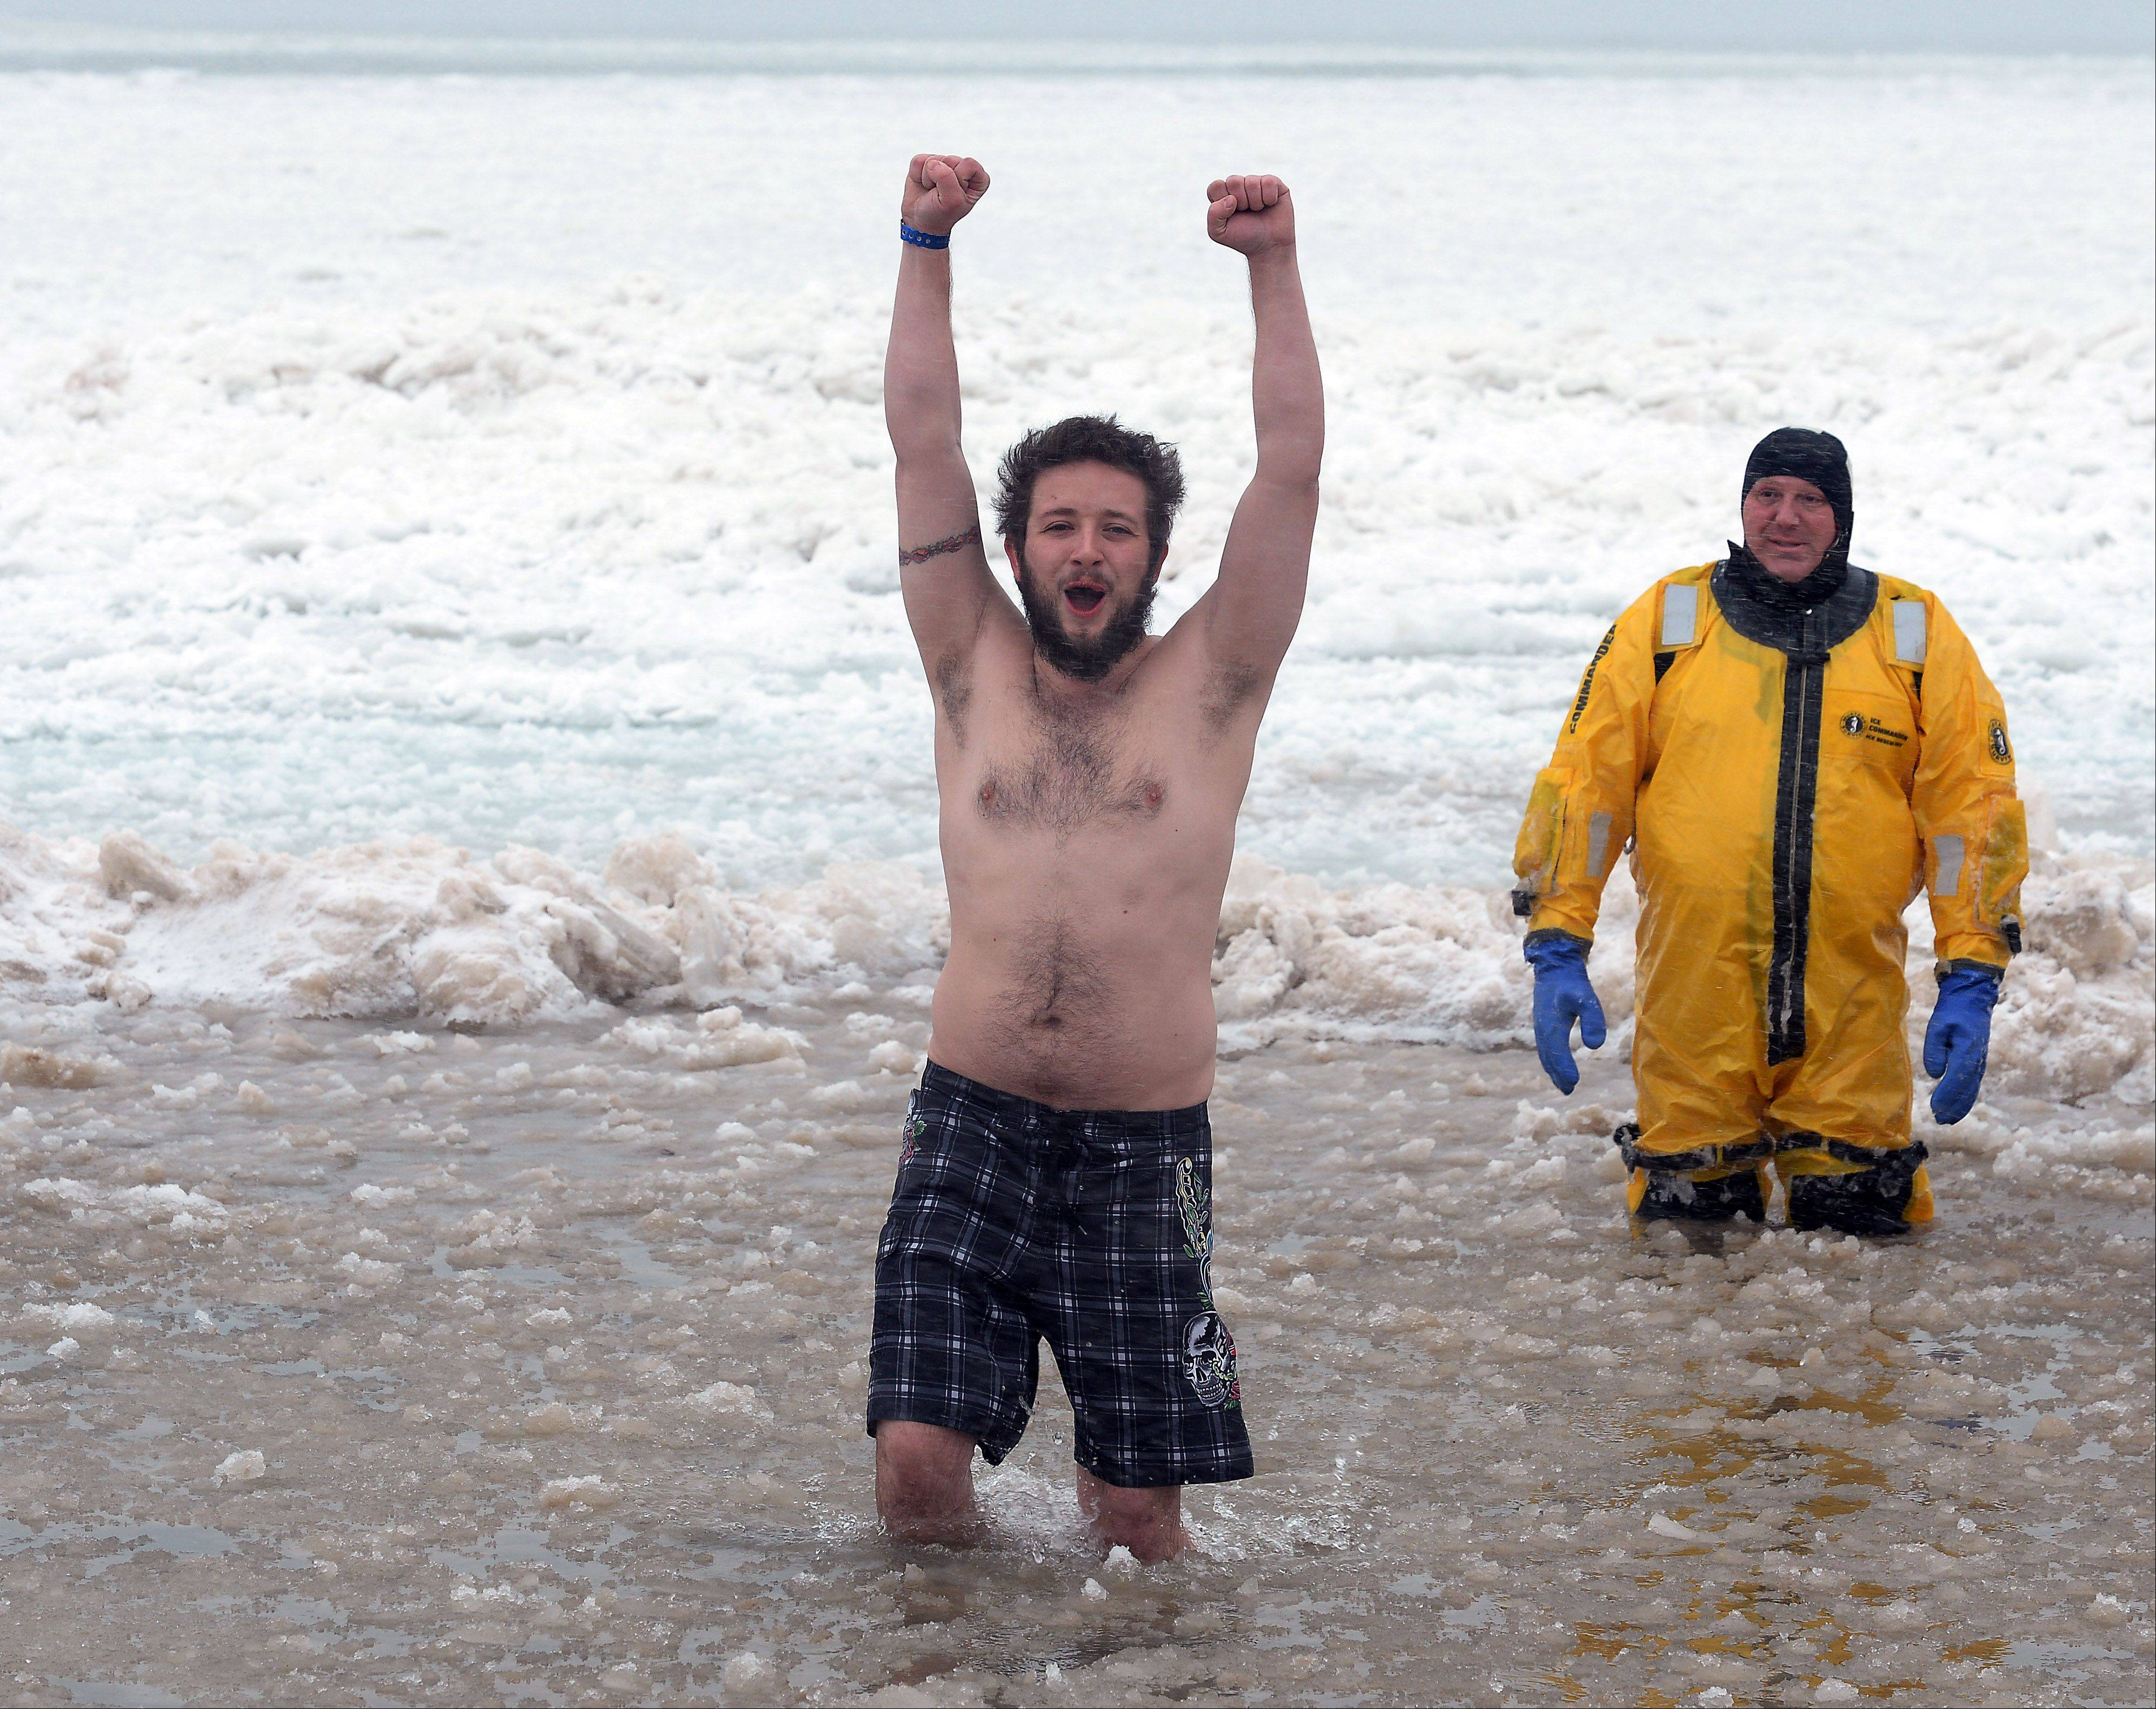 Brad Paschall of Waukegan feels victorious as he braves the freezing Lake Michigan water celebrating the new year during the 15th Annual Polar Bear Plunge at Waukegan Municipal Beach.